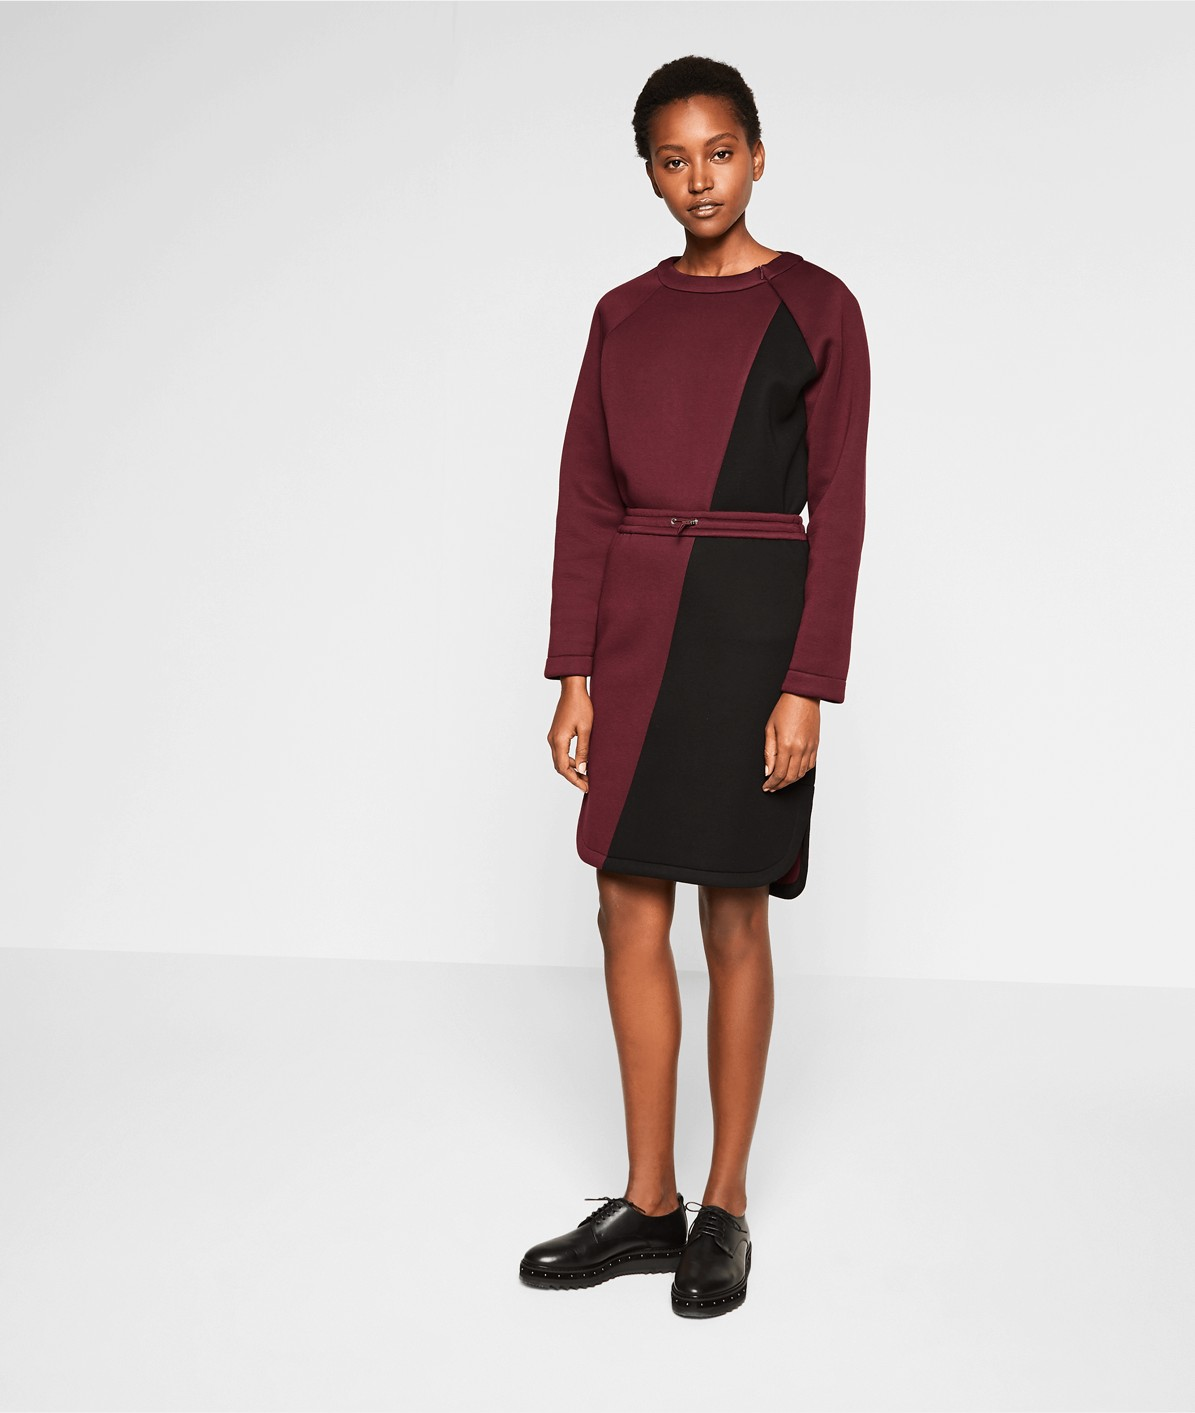 Neoprene skirt from liebeskind